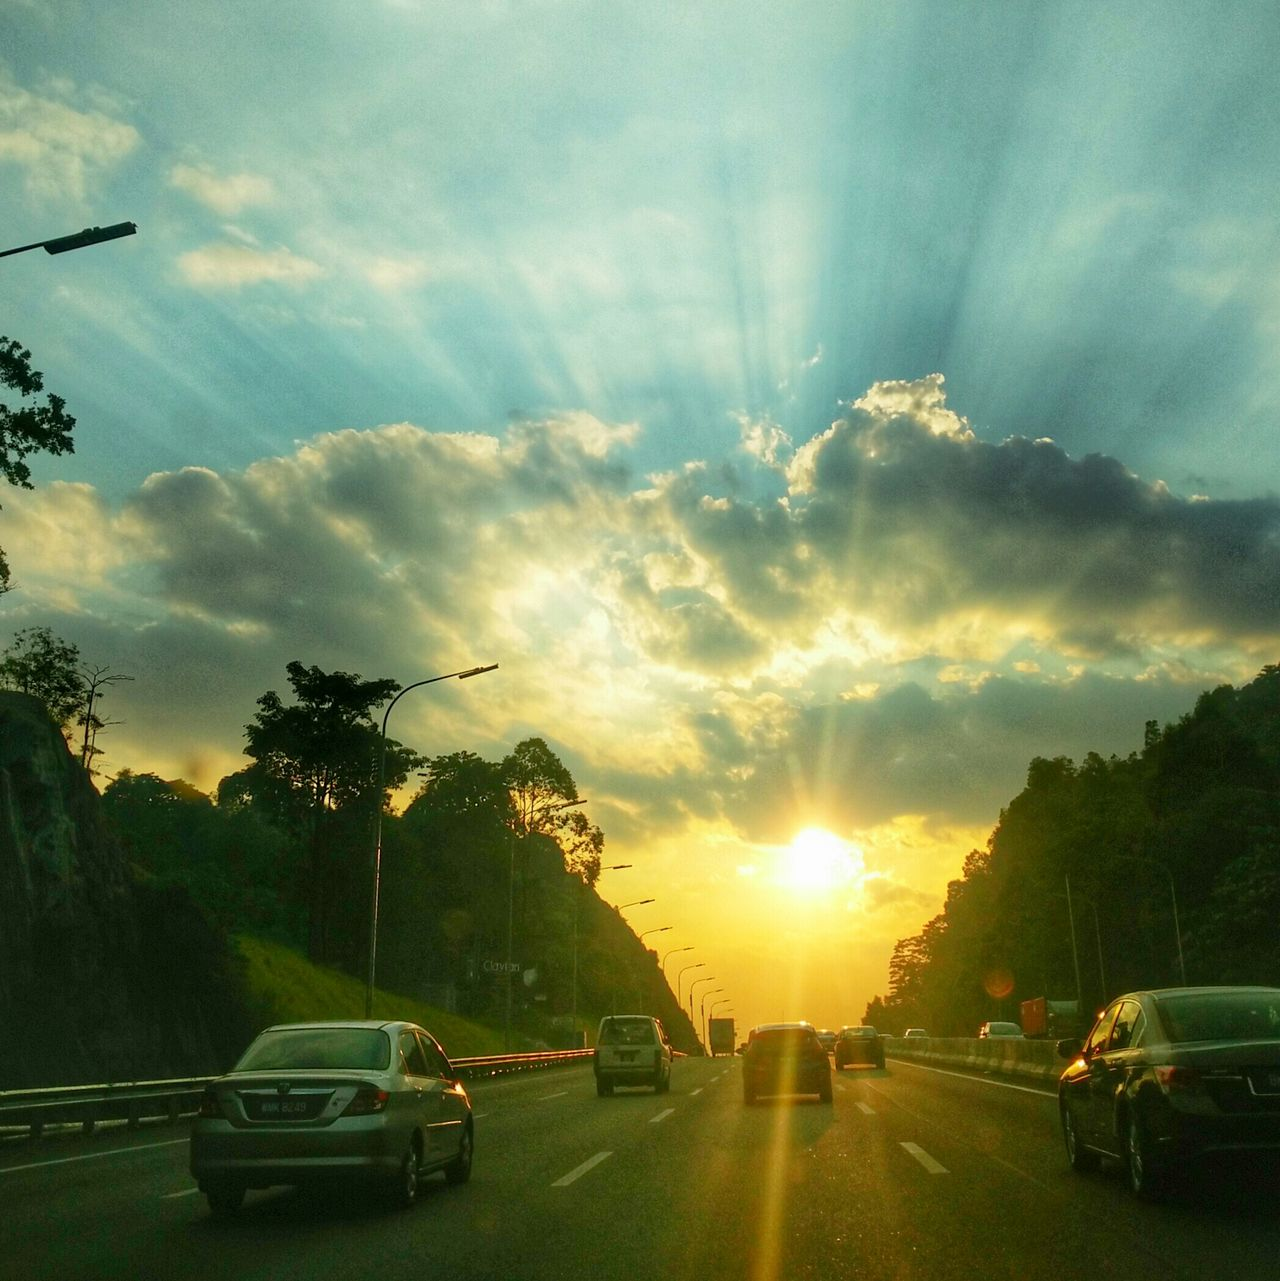 Sunset with Rayoflight at nkve Highway